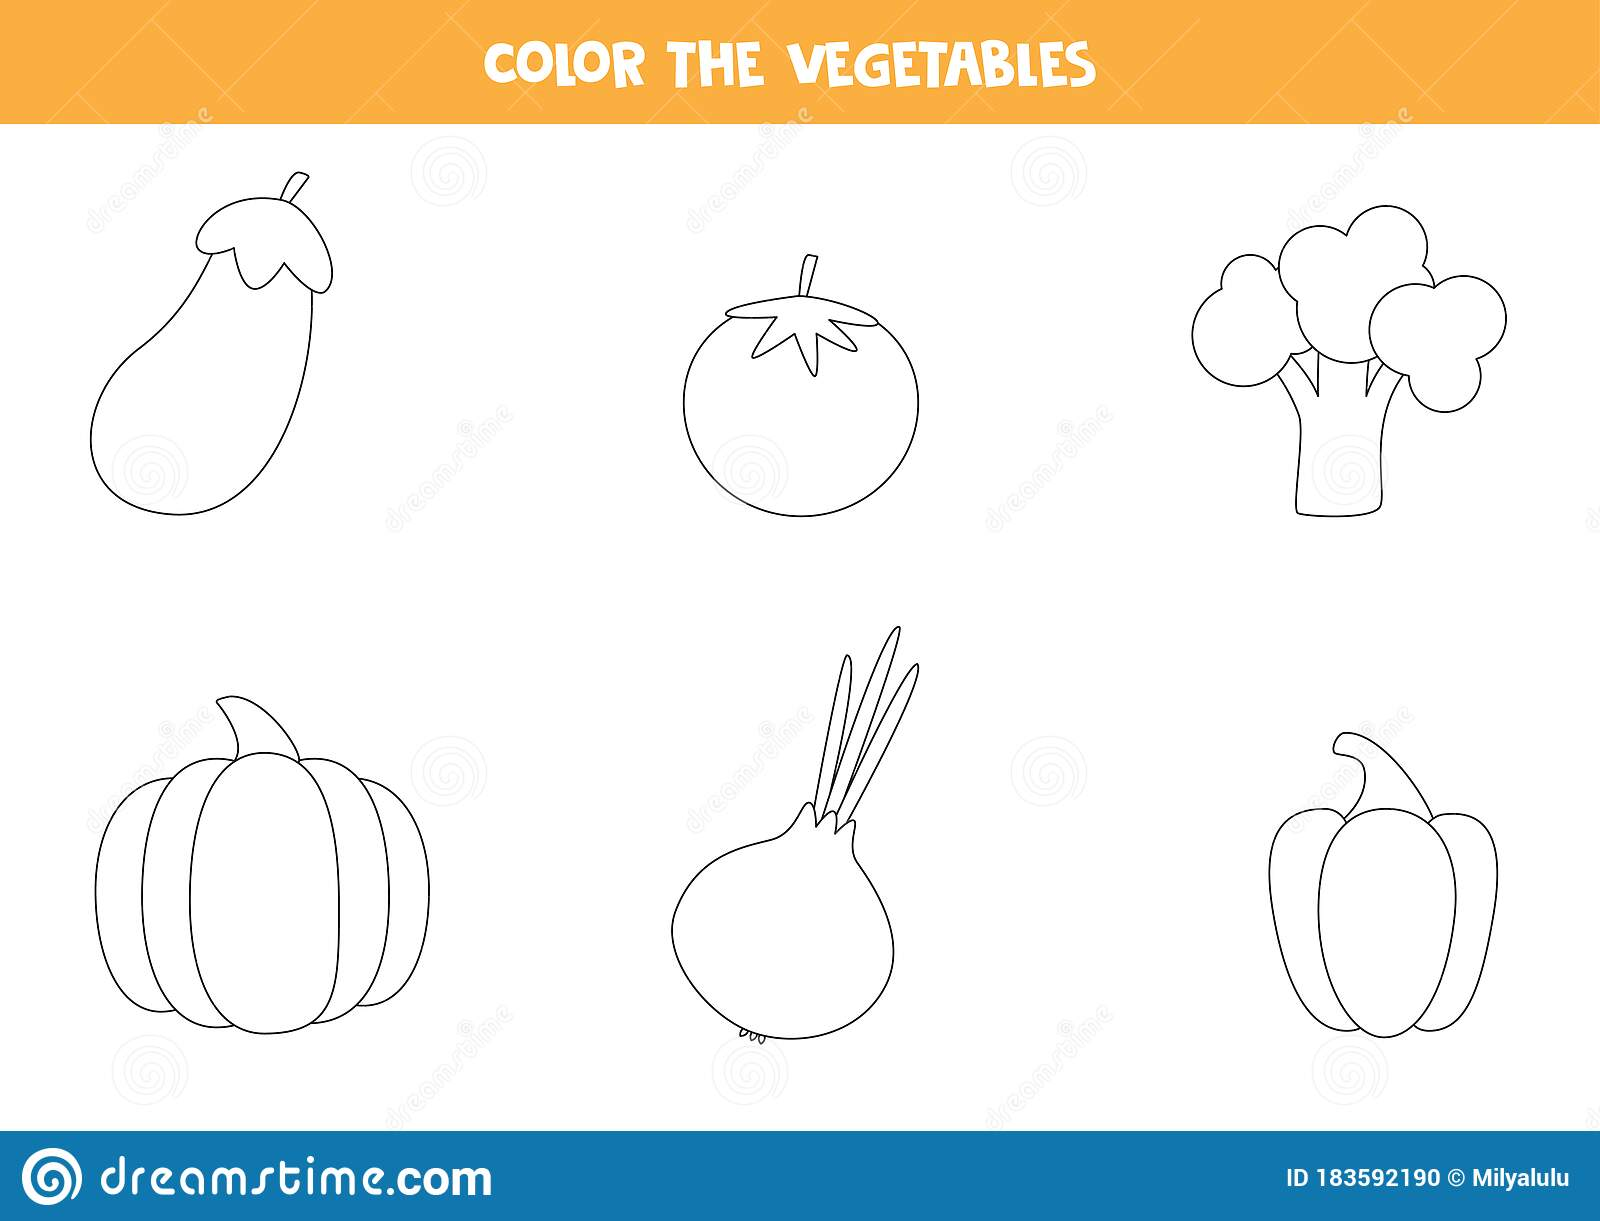 Coloring Pages With Vegetables For Preschool Kids Stock